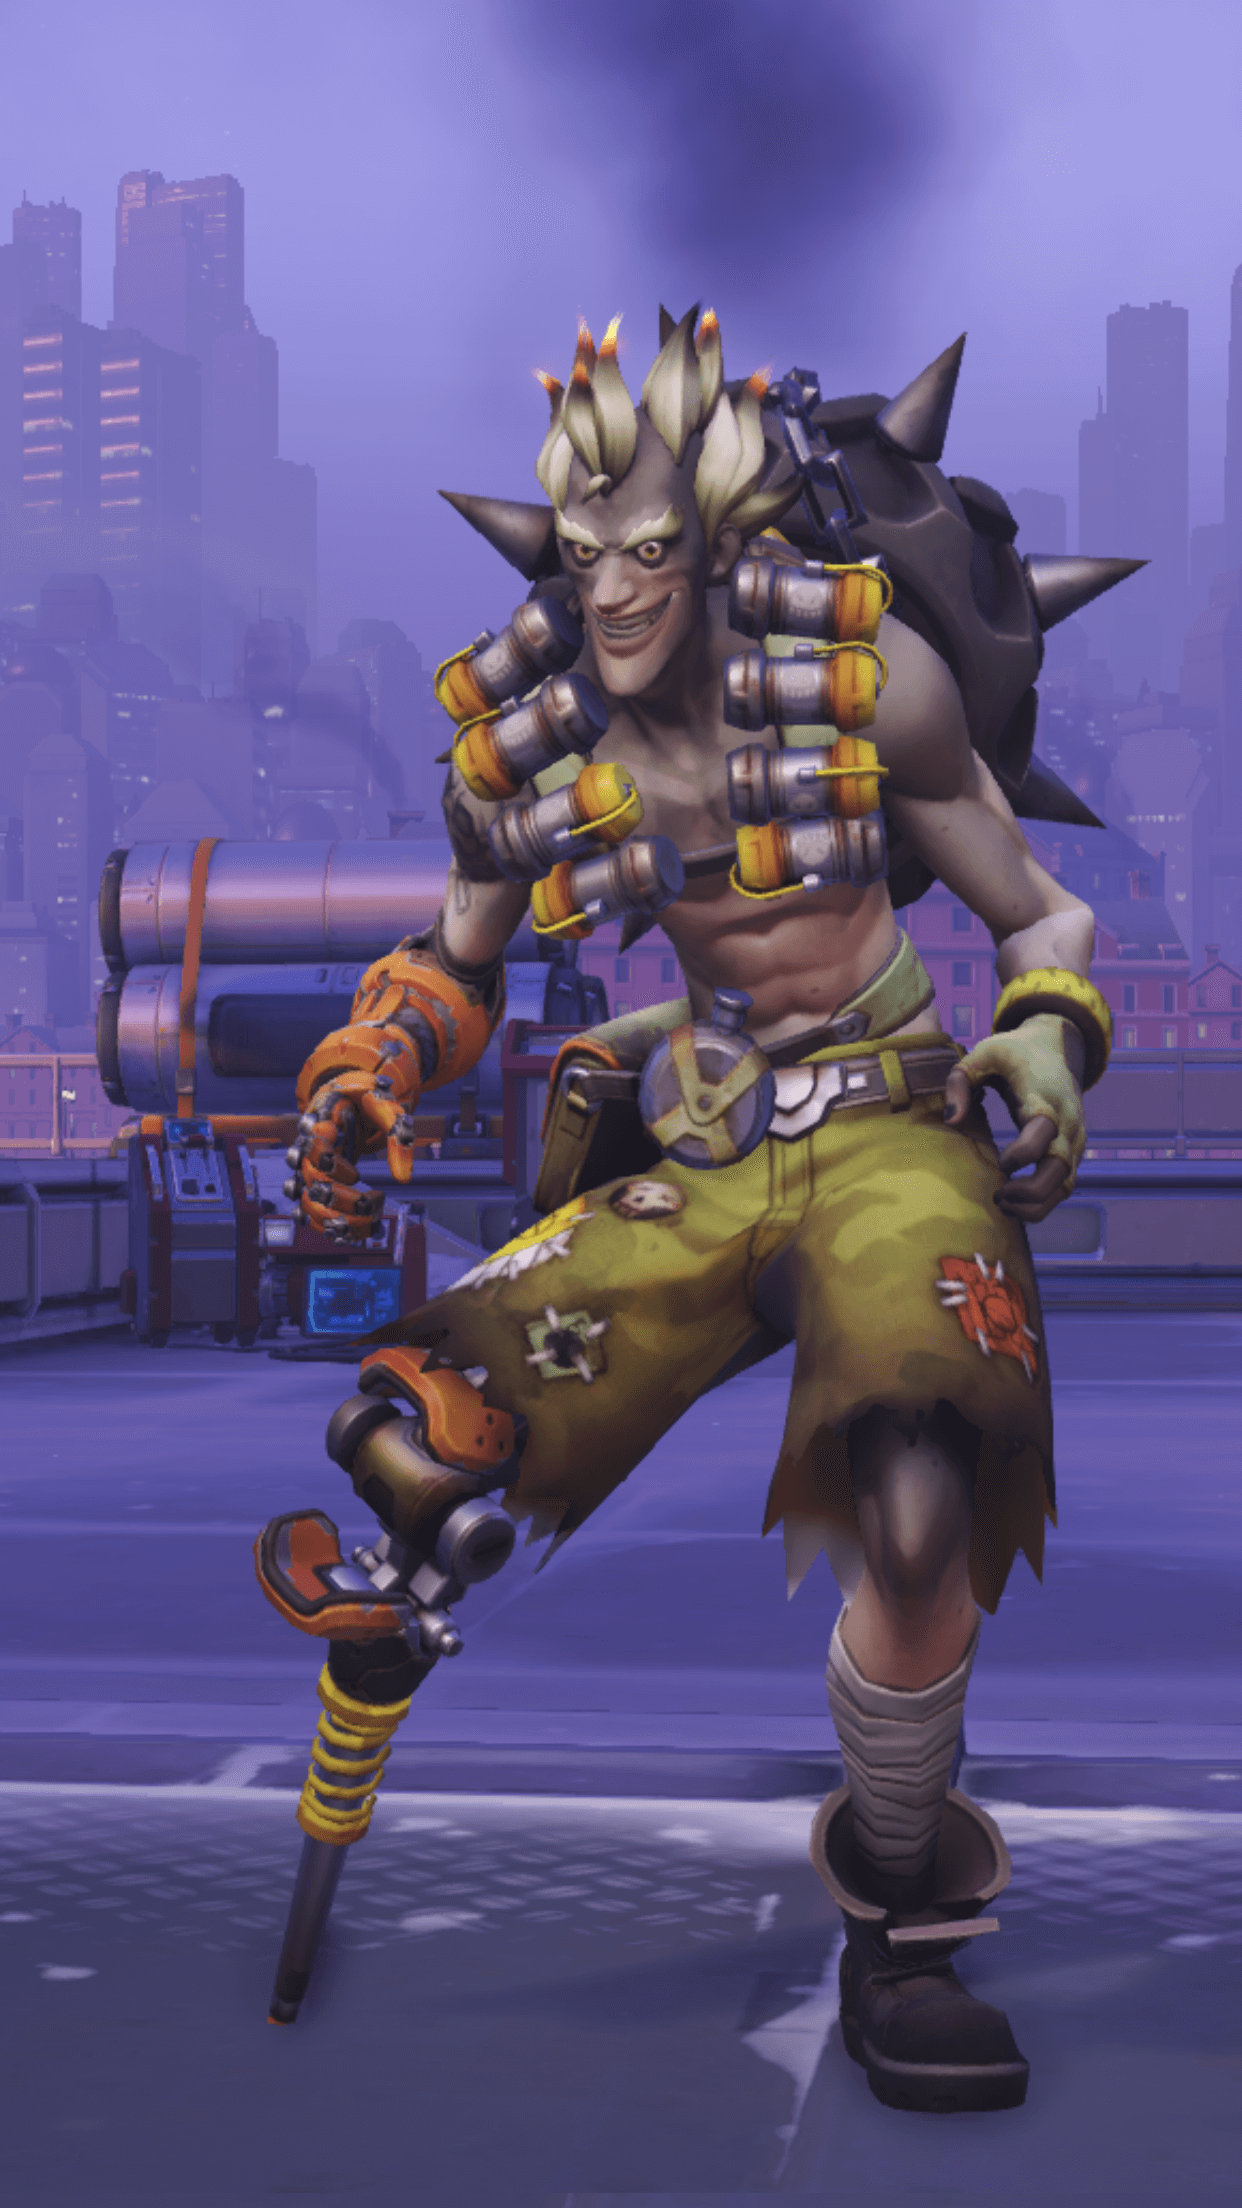 Overwatch iPhone 6 Wallpapers   Dragon Blogger Technology 1242x2208